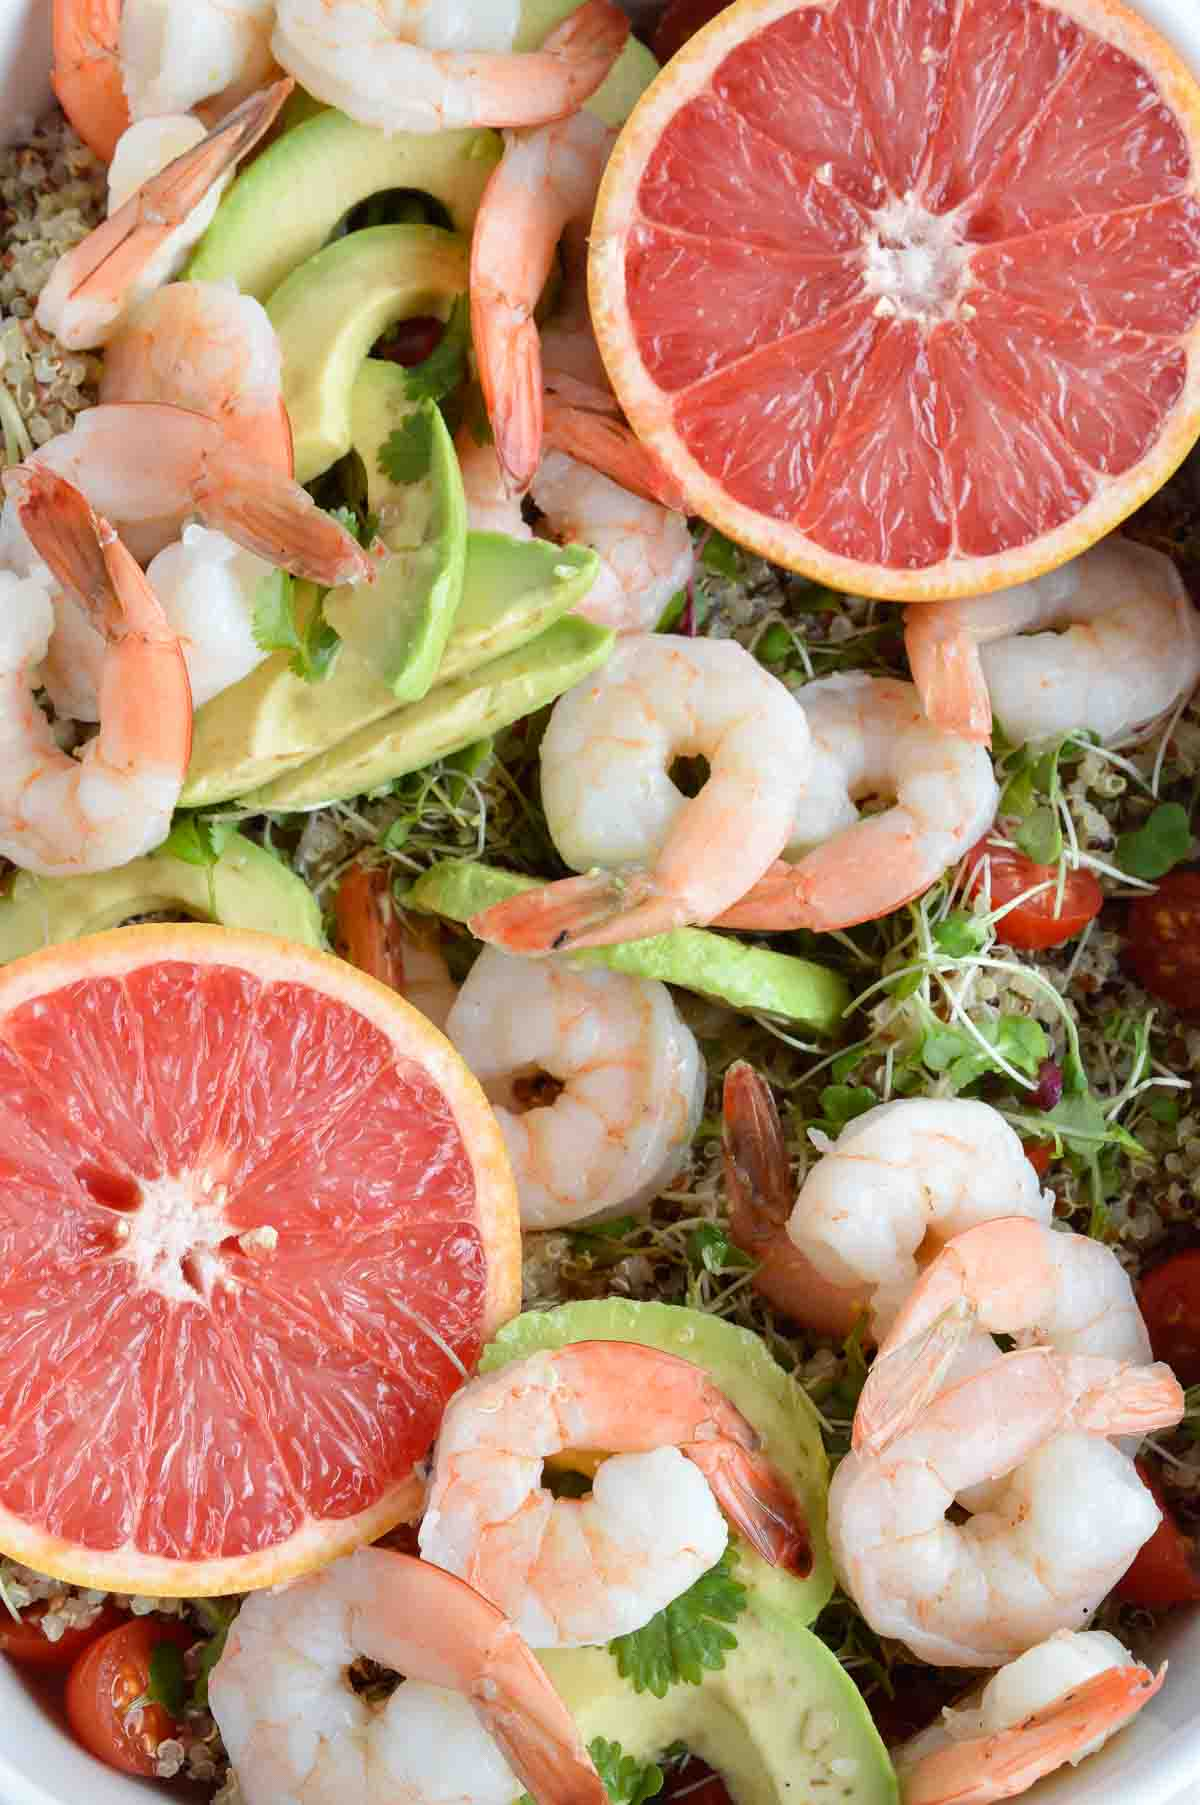 Shrimp Avocado Salad with Quinoa and Grapefruit Dressing is a bright, flavorful and healthy recipe! A simple salad made with boiled shrimp, avocados, tomatoes, quinoa, micro greens and homemade grapefruit vinaigrette.